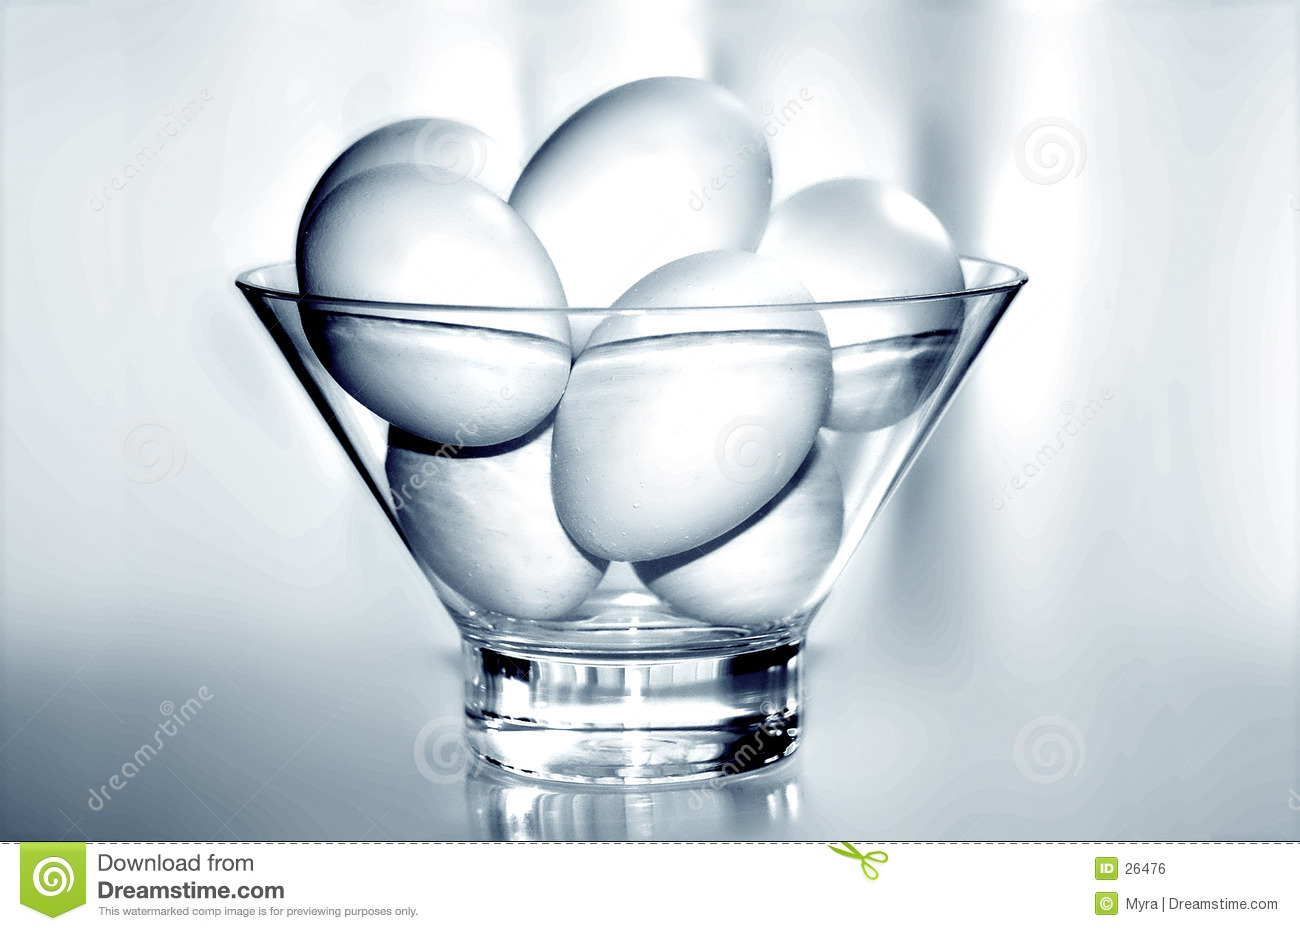 Download Eggs stock photo. Image of generated, conceptual, imaging - 26476